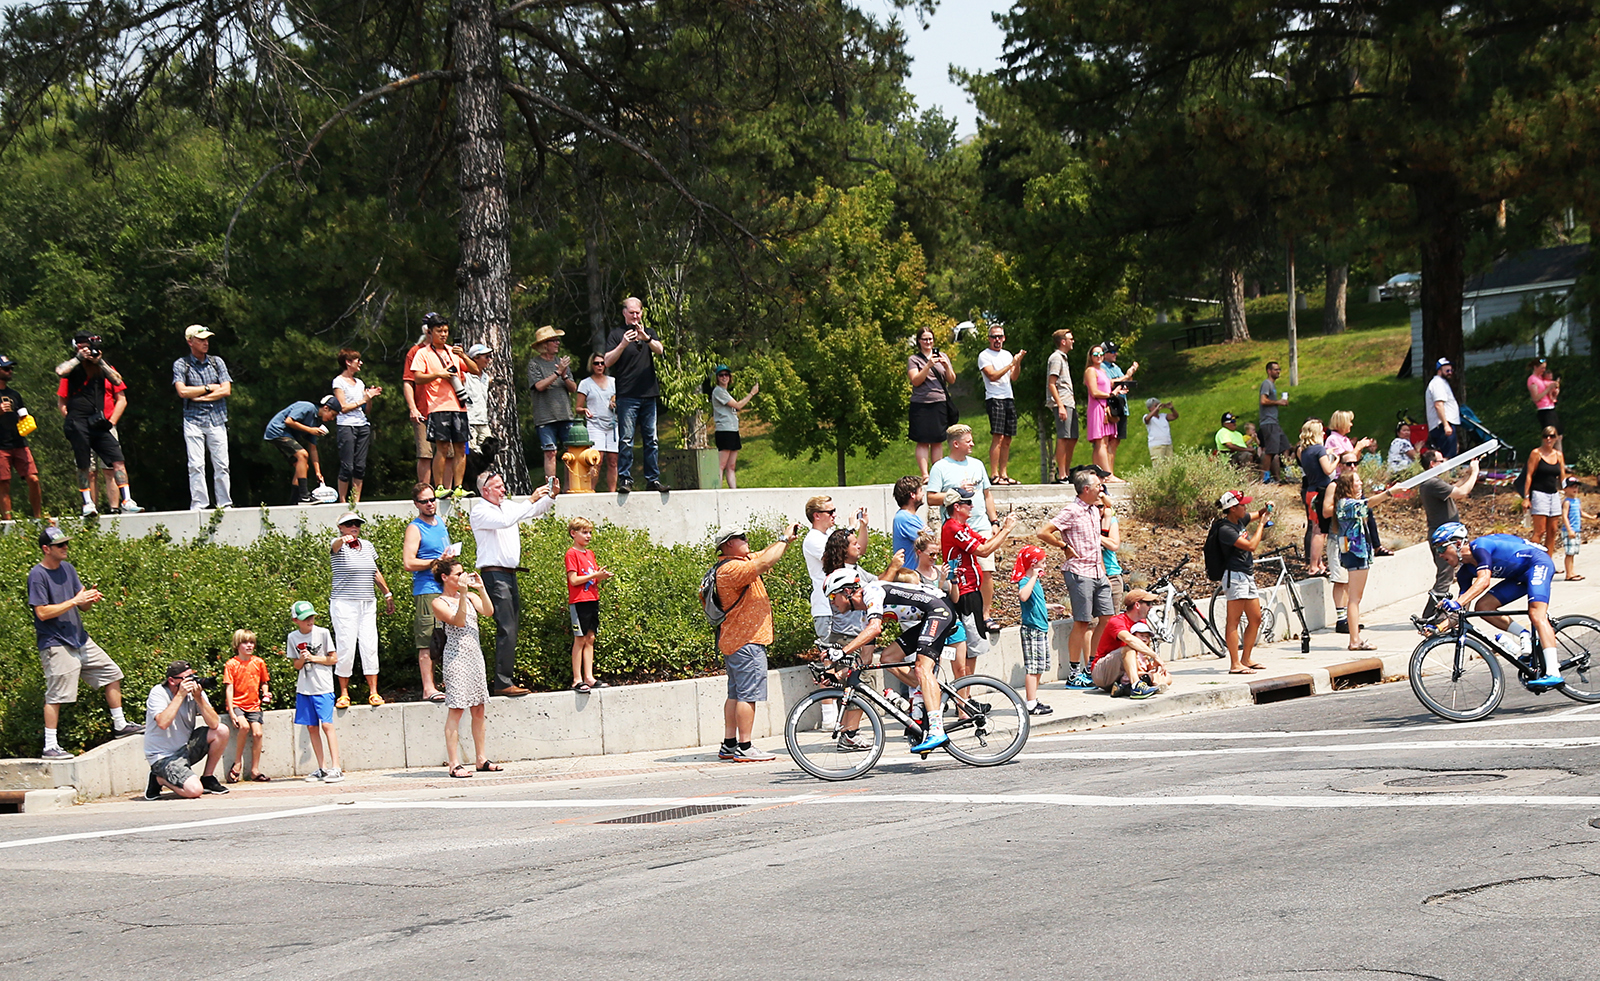 Fans flocked to this corner. 2018 Tour of Utah Stage 4, August 8, 2018, Salt Lake City, Utah. Photo by Cathy Fegan-Kim, cottonsoxphotography.net